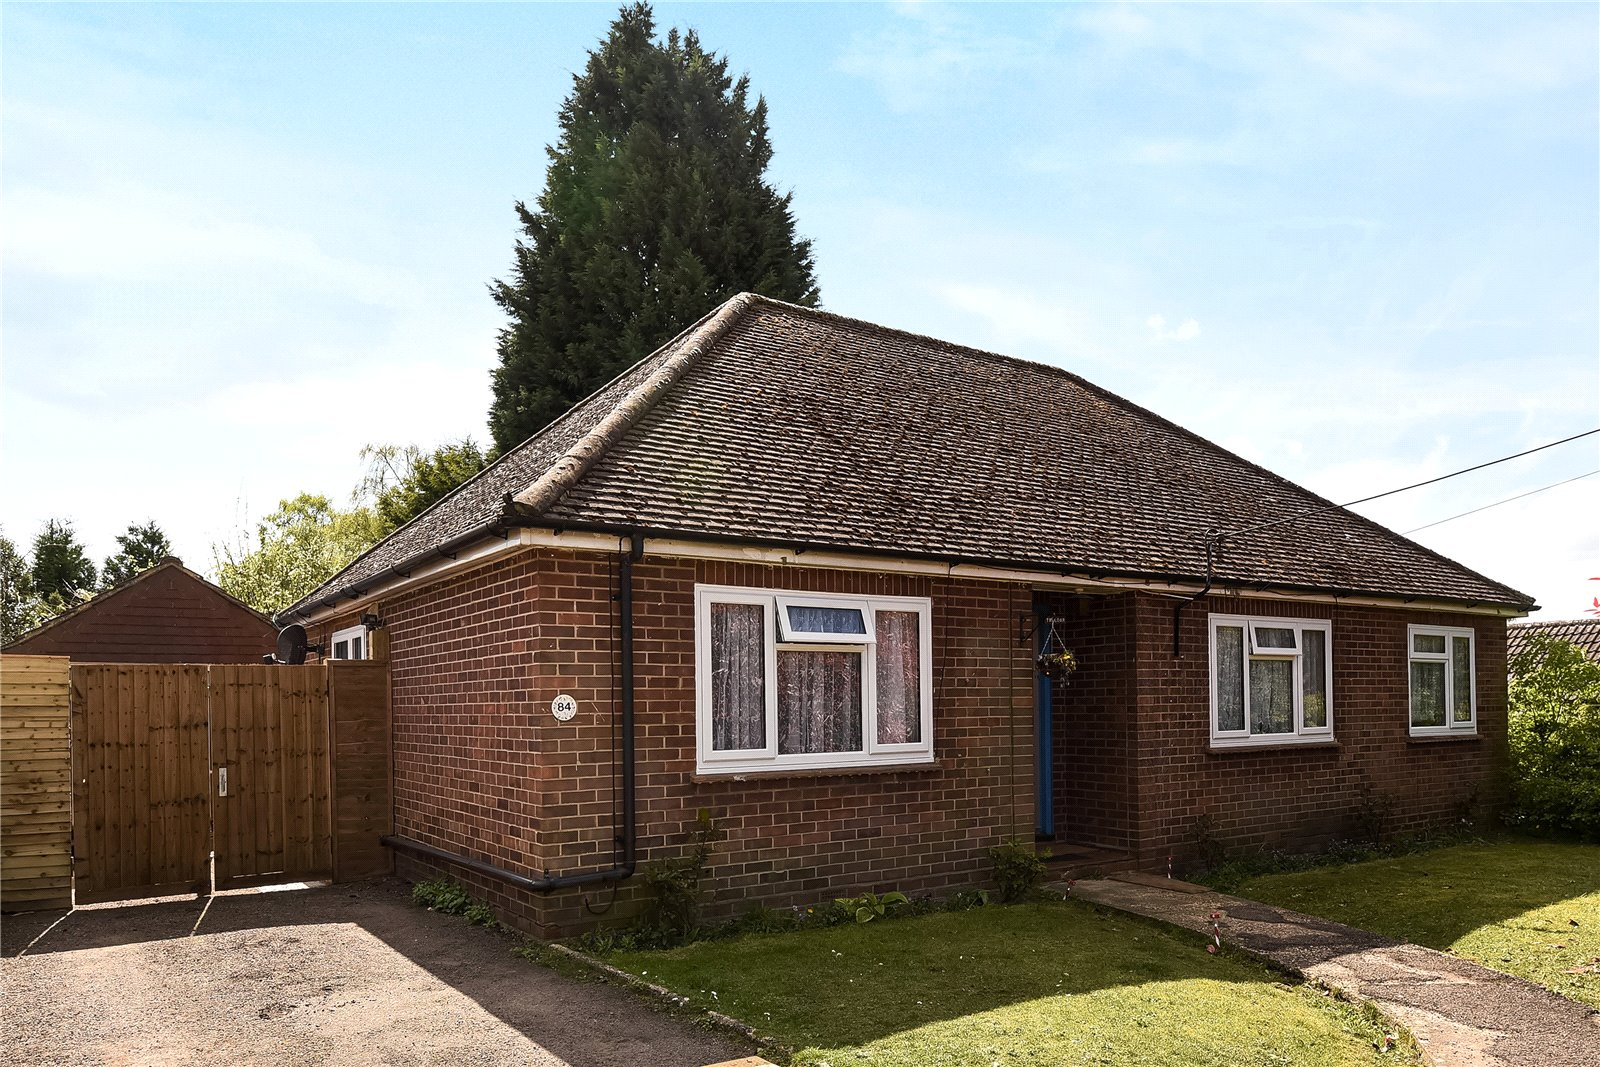 3 Bedrooms Detached Bungalow for sale in Yeovil Road, College Town, Sandhurst, Berkshire, GU47